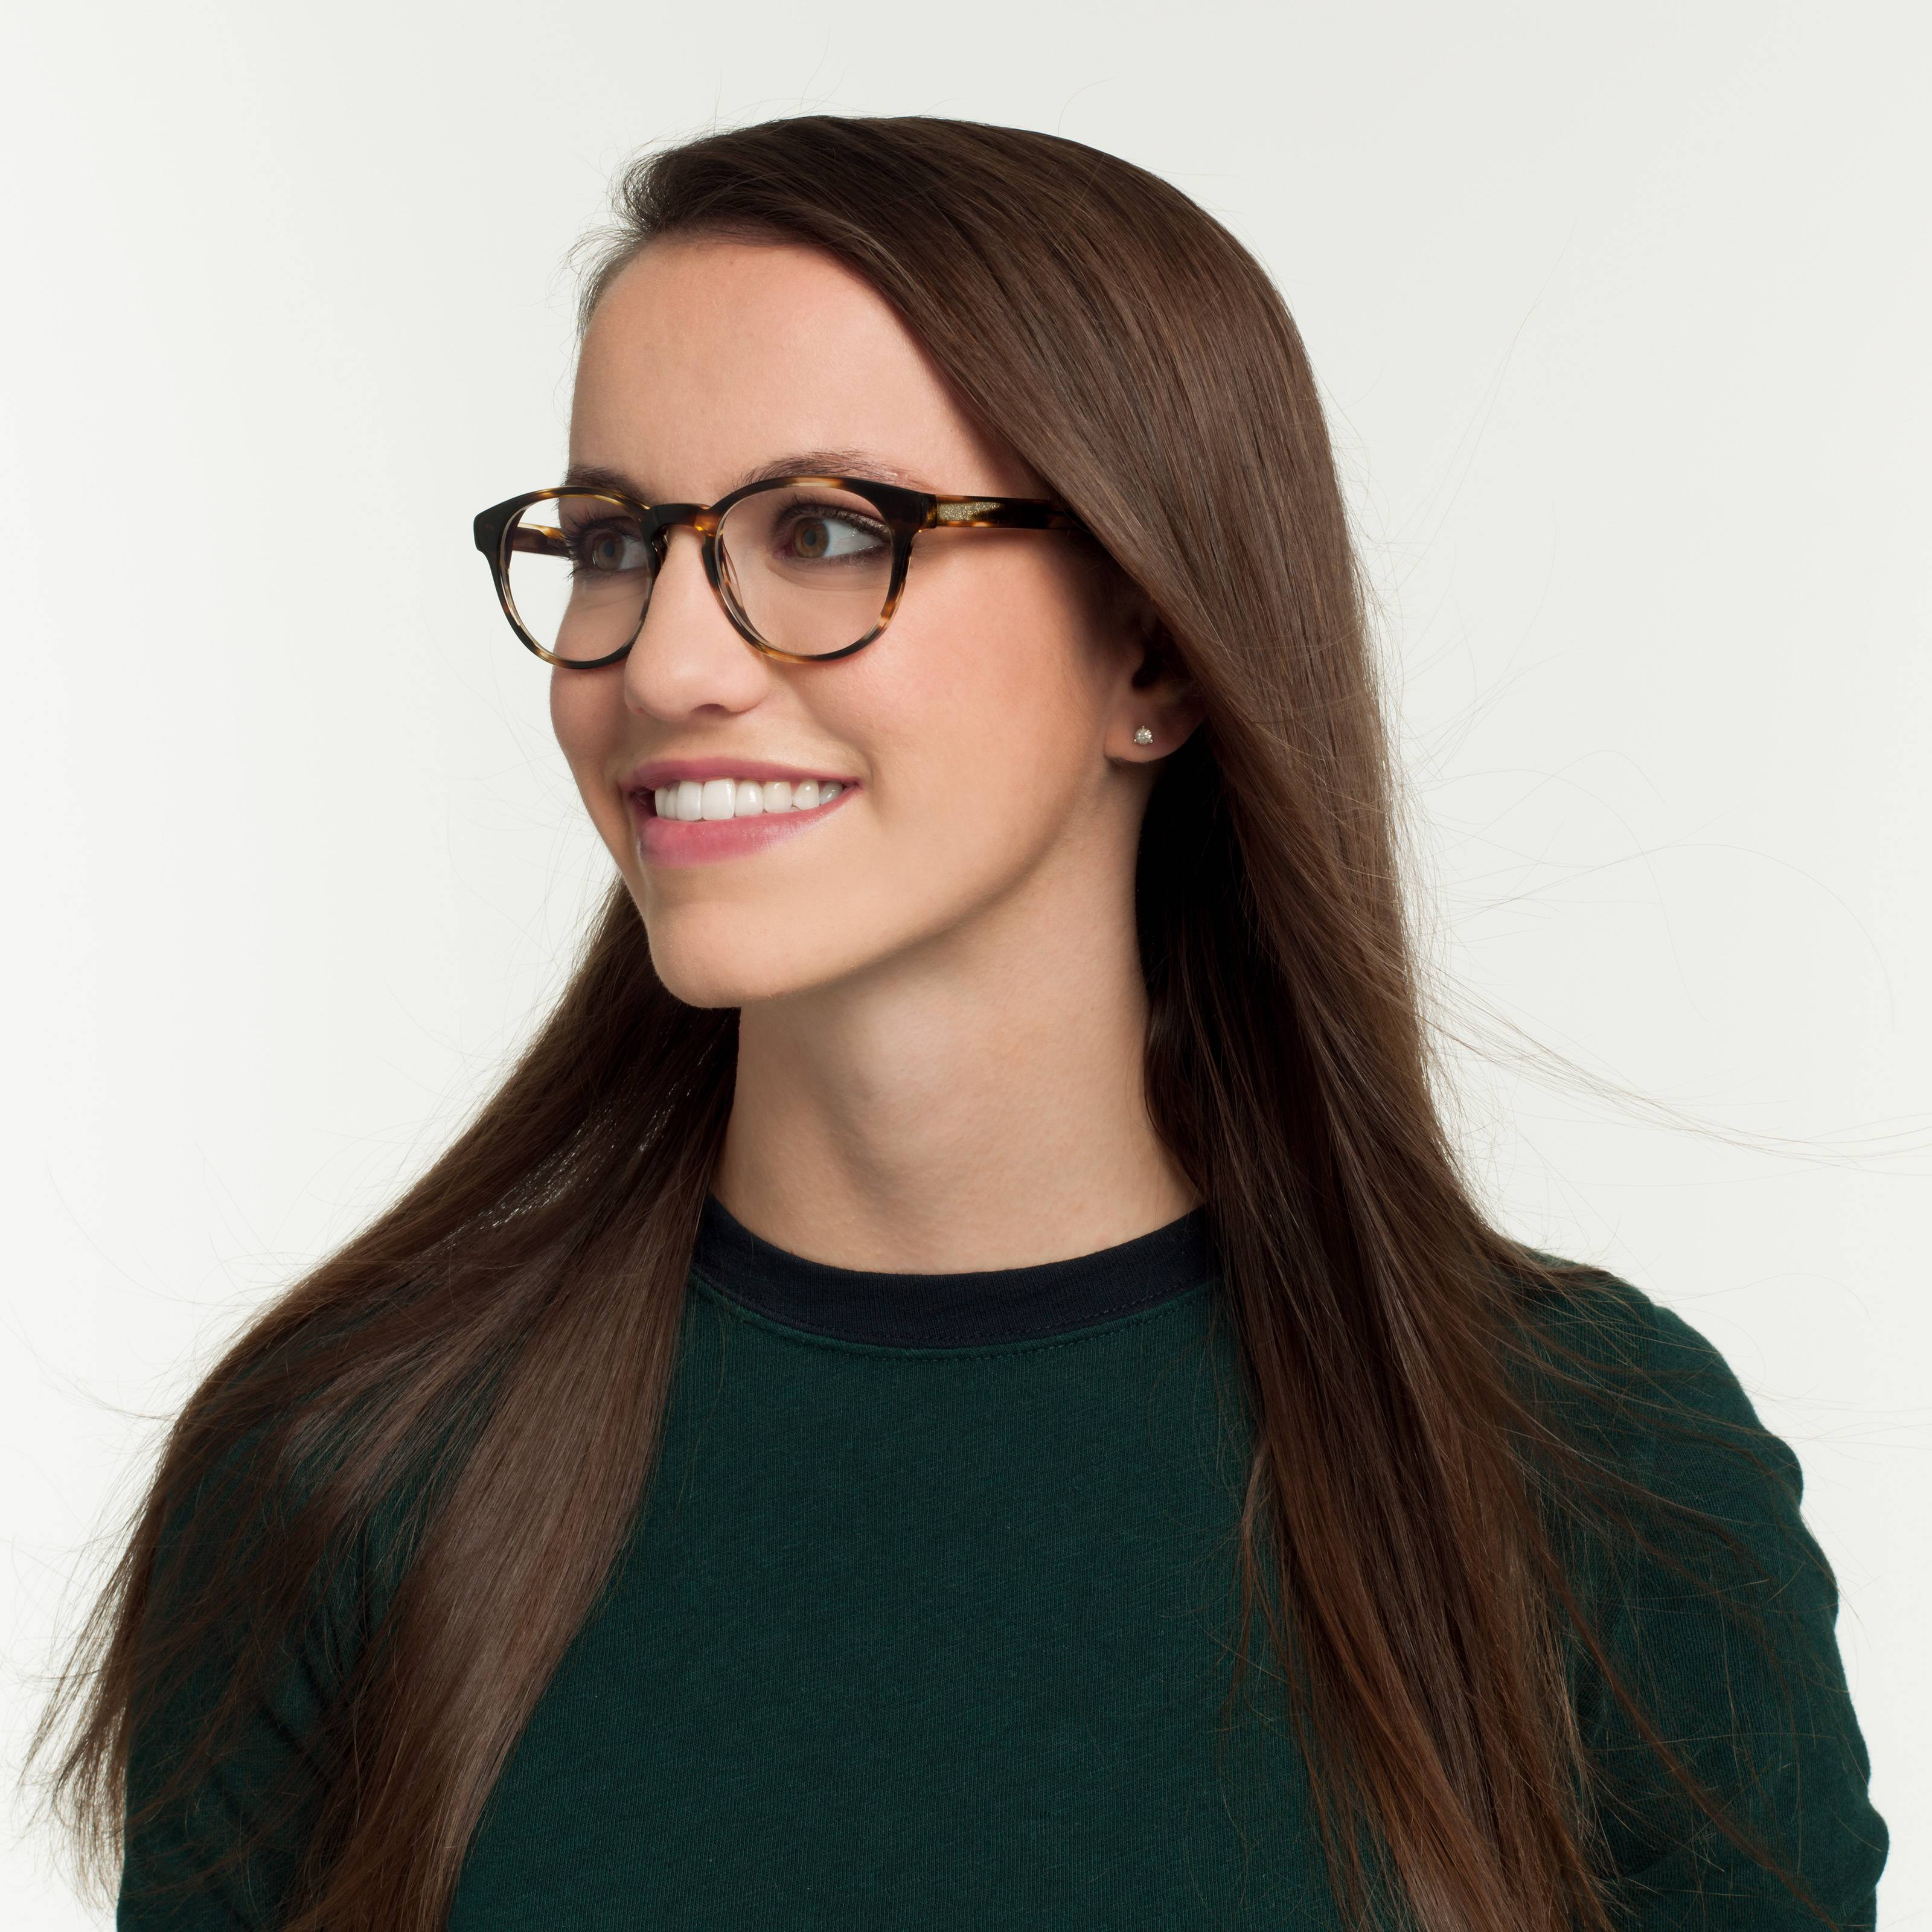 Warby Parker Promo Codes & Sales. To find the latest Warby Parker coupon codes and sales, just follow this link to the website to browse their current offerings. And while you're there, sign up for emails to get alerts about discounts and more, right in your inbox.5/5(5).